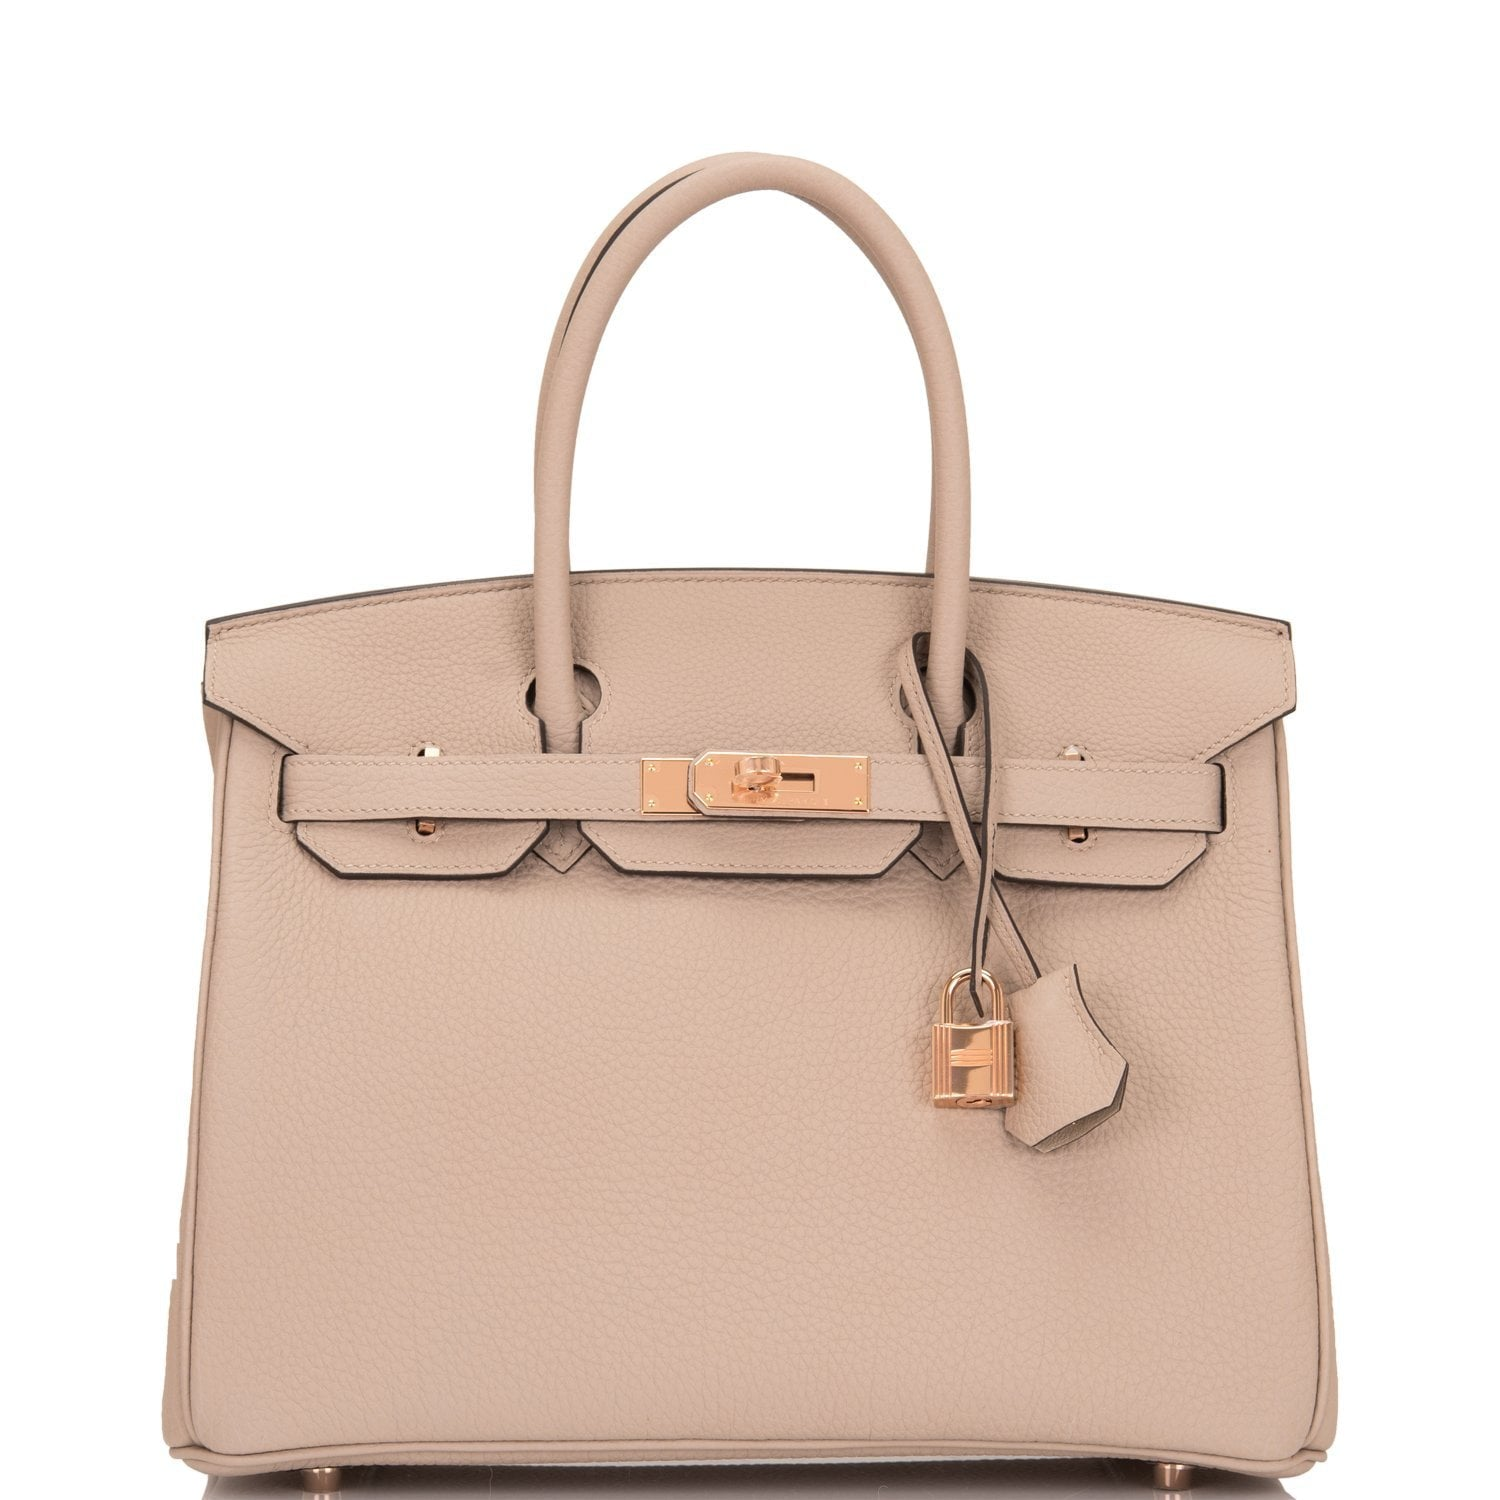 5ce93dcda1f9 Hermes Gris Tourterelle Togo Birkin 30cm Rose Gold Hardware – Madison  Avenue Couture